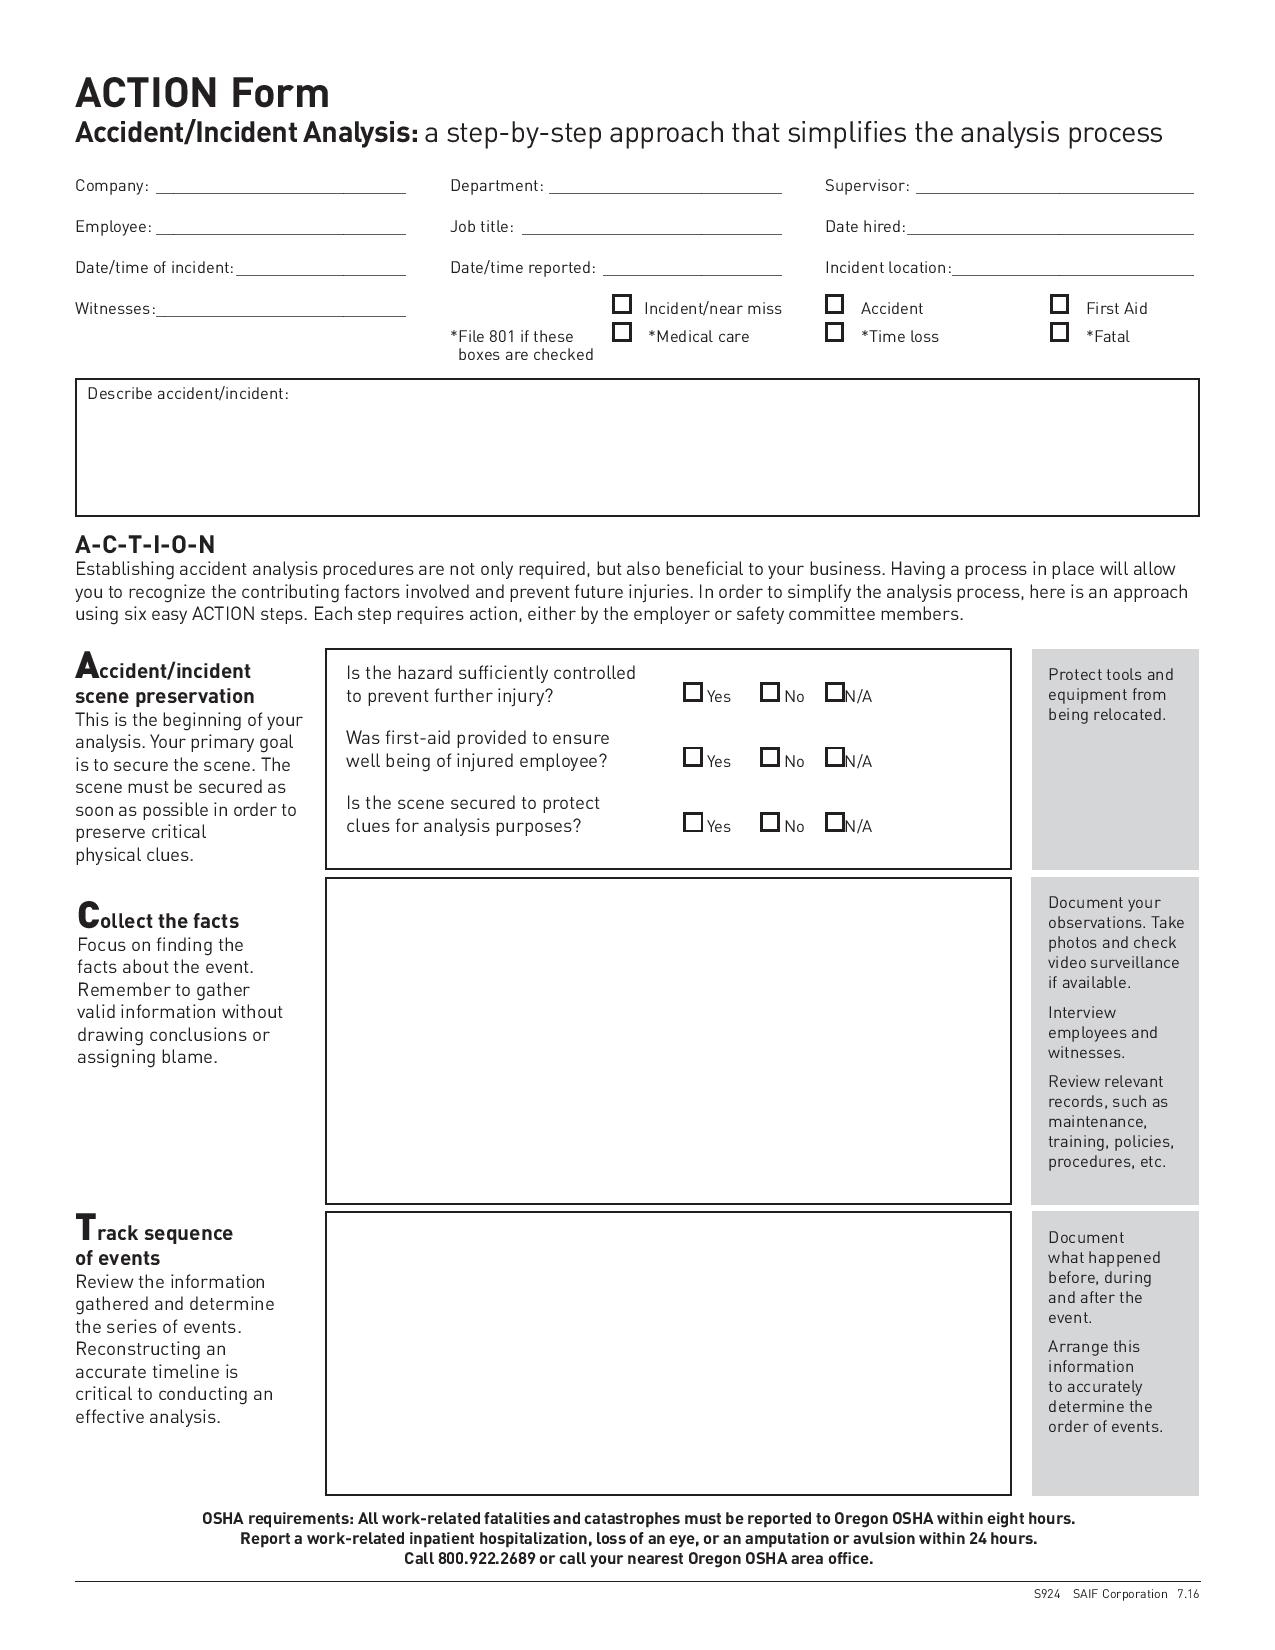 accident or incident action form page 0011